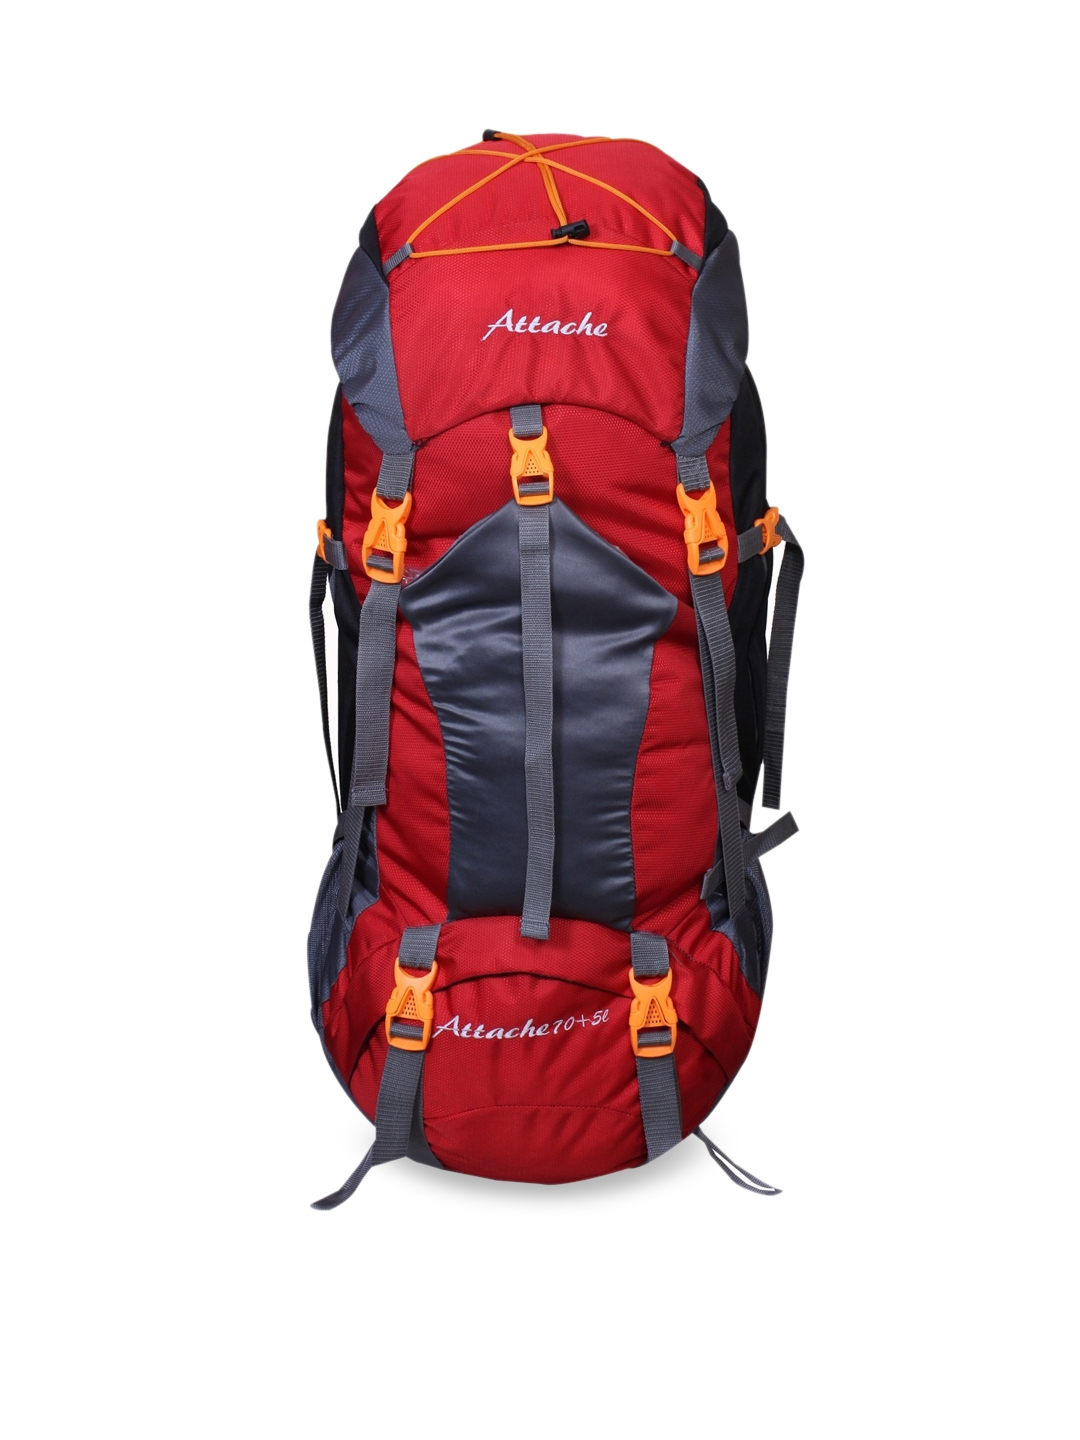 ATTACHE Unisex Red   Grey Brand Logo Hiking Backpack 75Lts With Rain Cover Rucksack